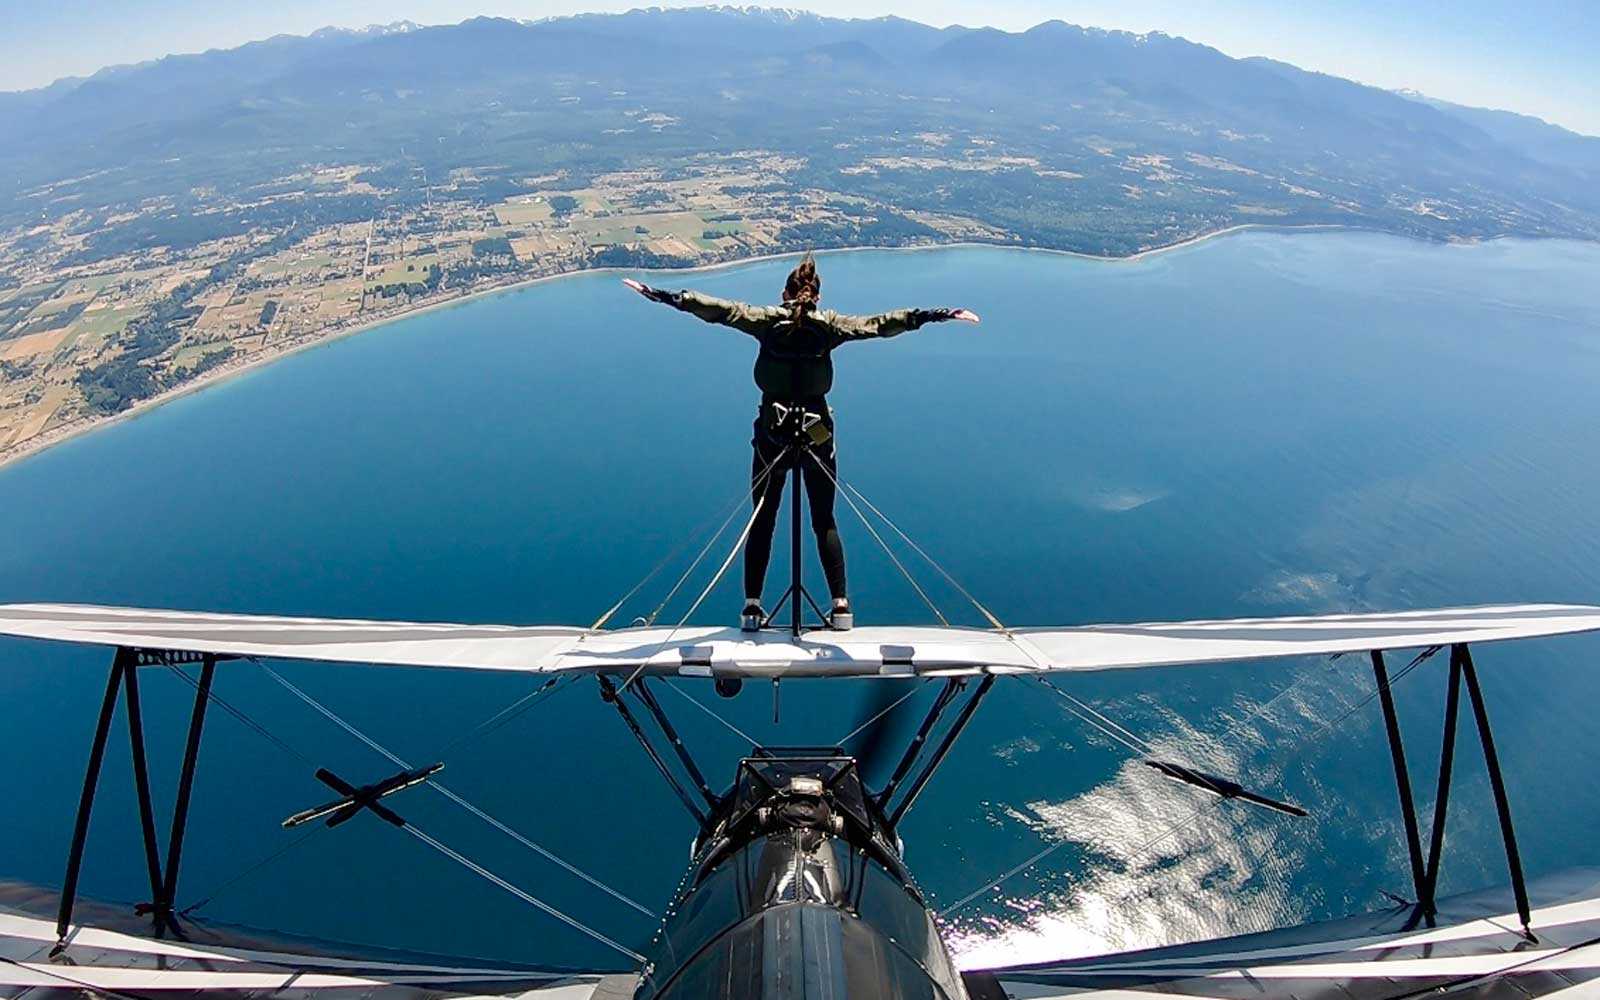 This Stunt-loving Flight Attendant Celebrated Her 50th Birthday by Walking on the Wings of an Airplane